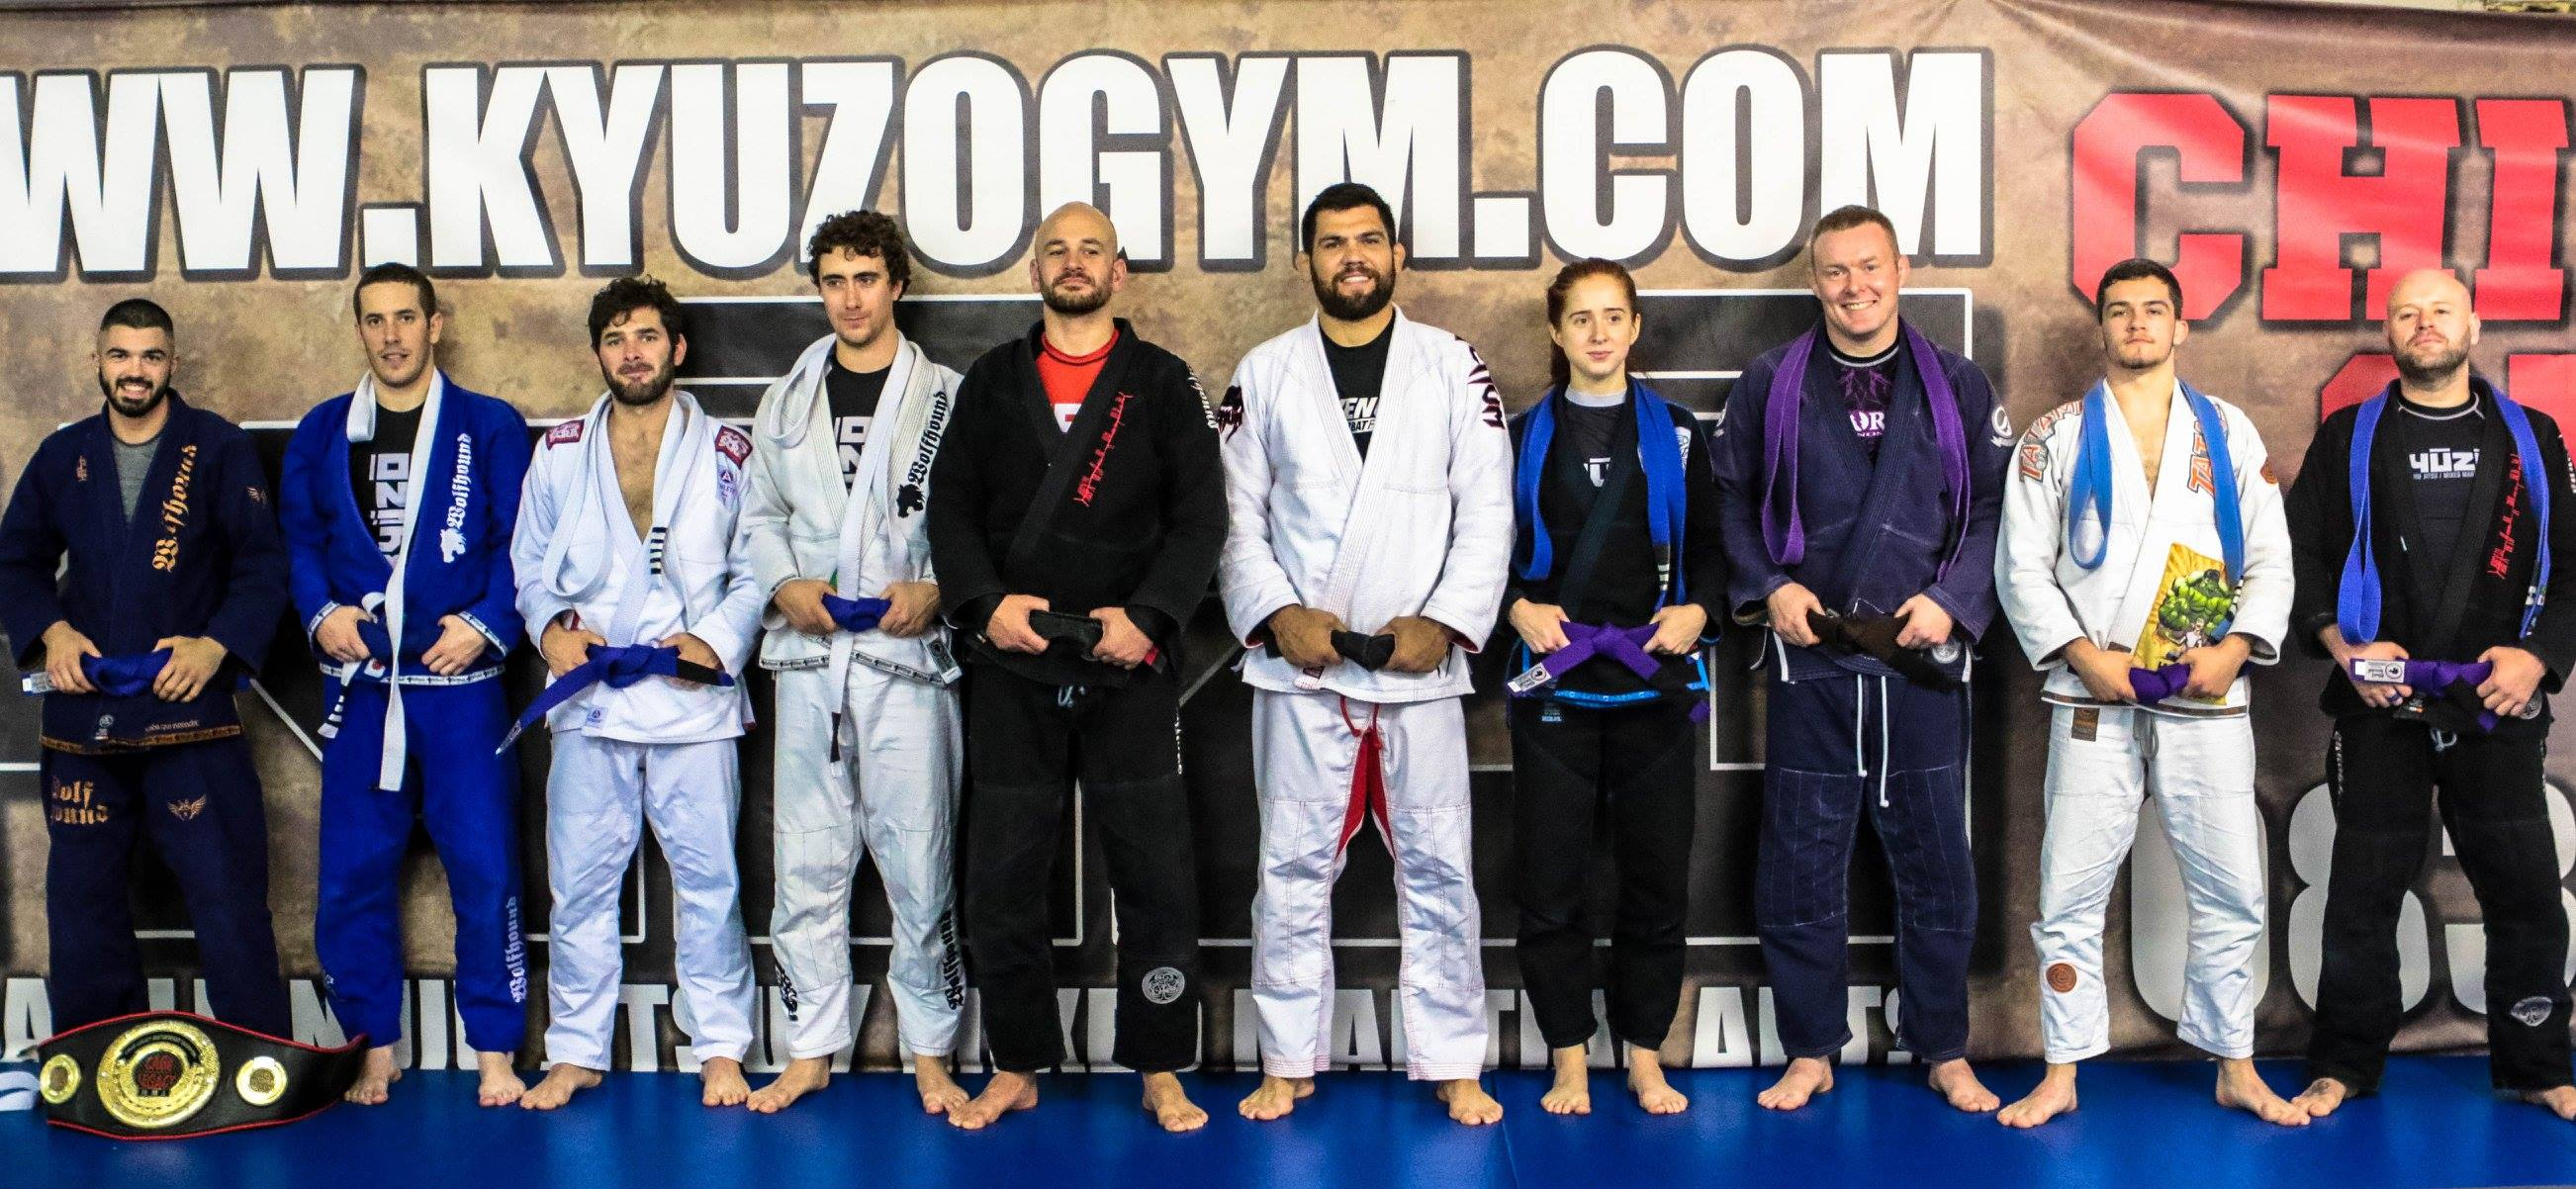 Our new BJJ belts with Black Belts Barry Oglesby and Robert Drysdale